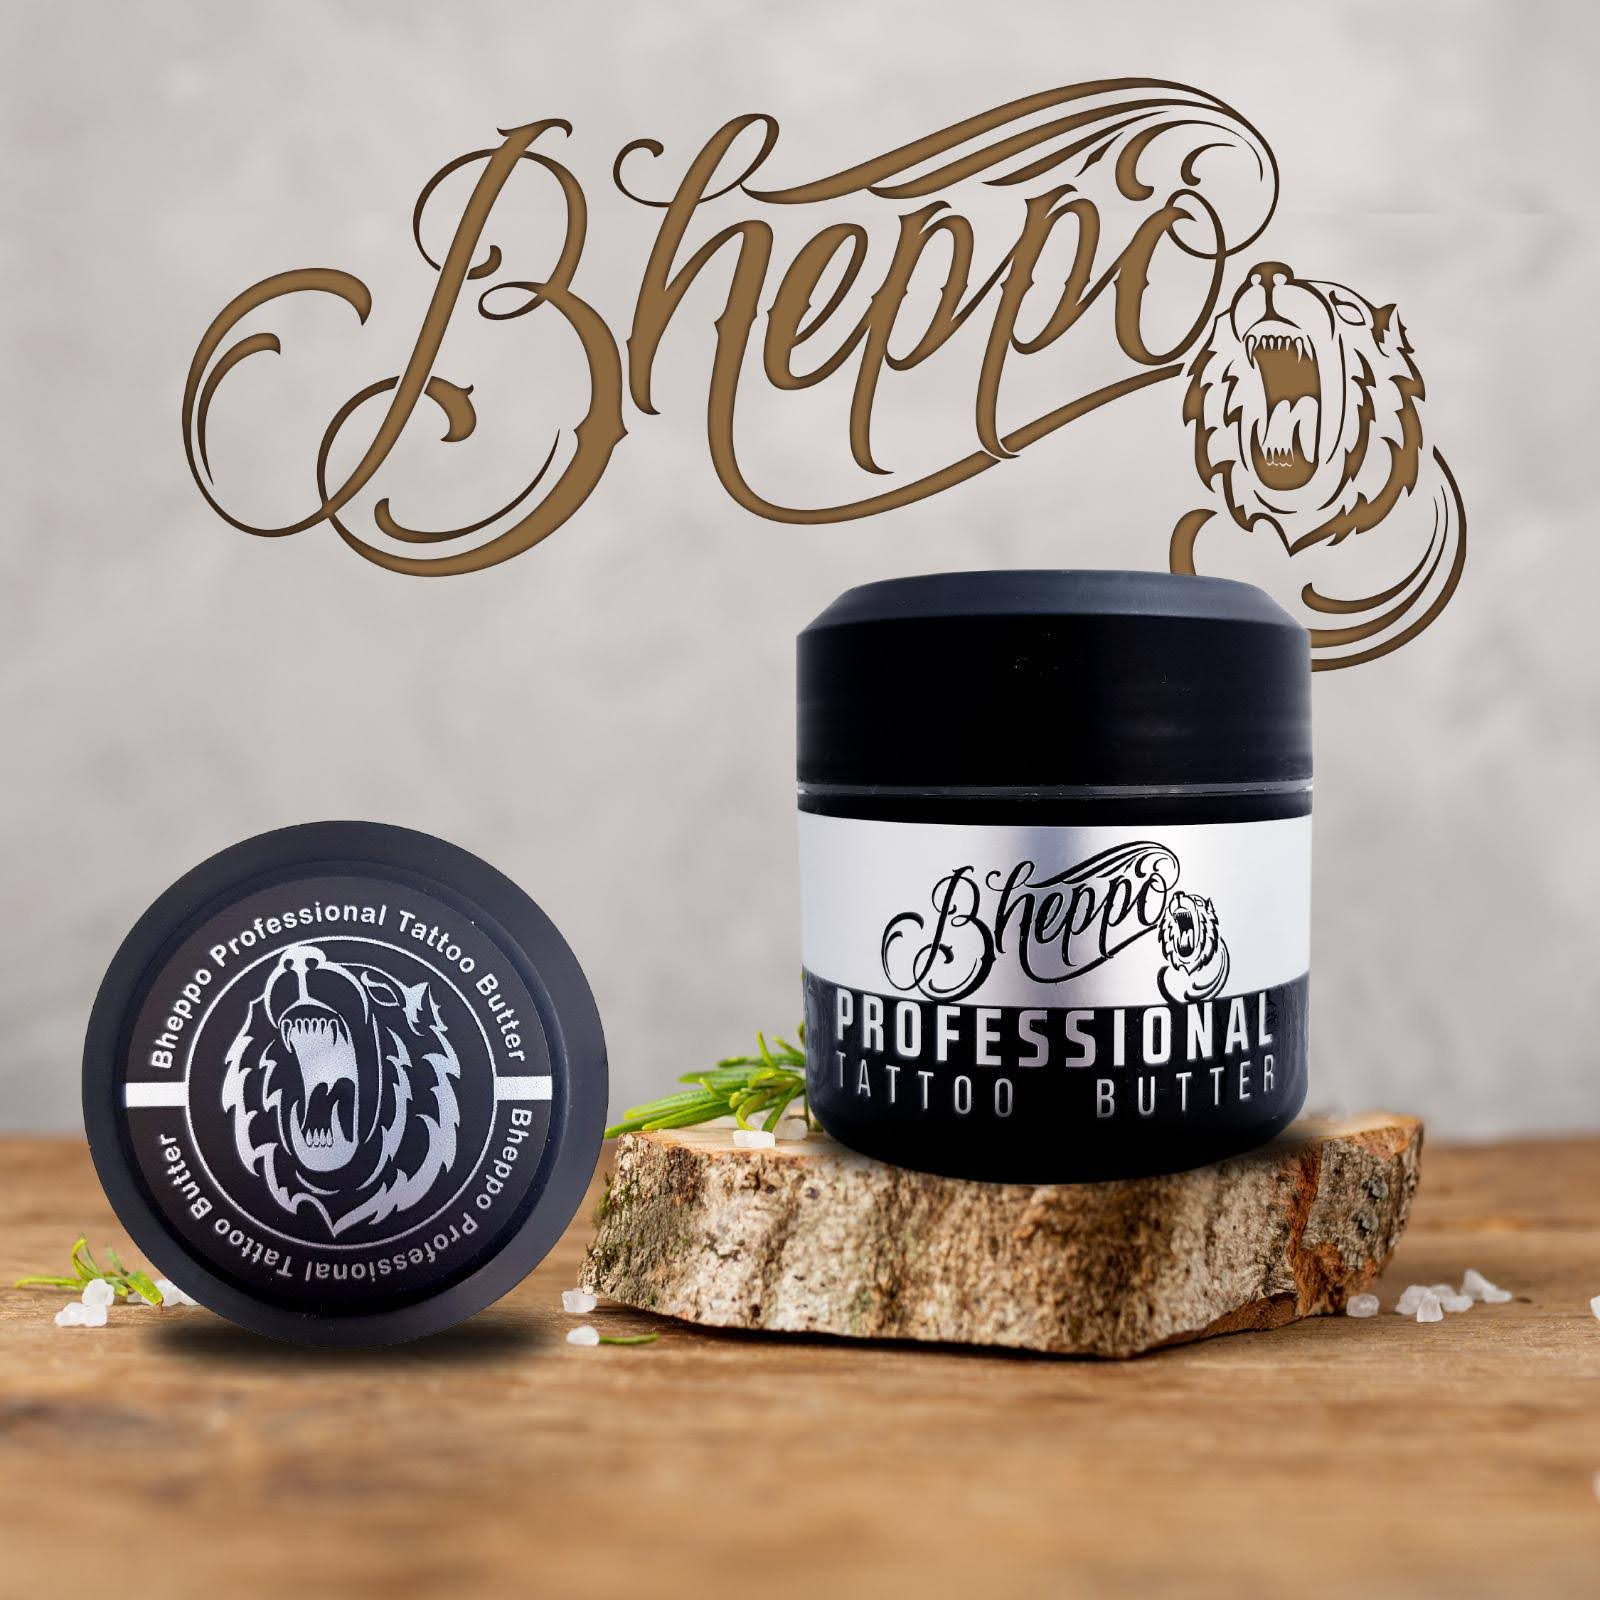 24 Pieces - Bheppo Tattoo Butter